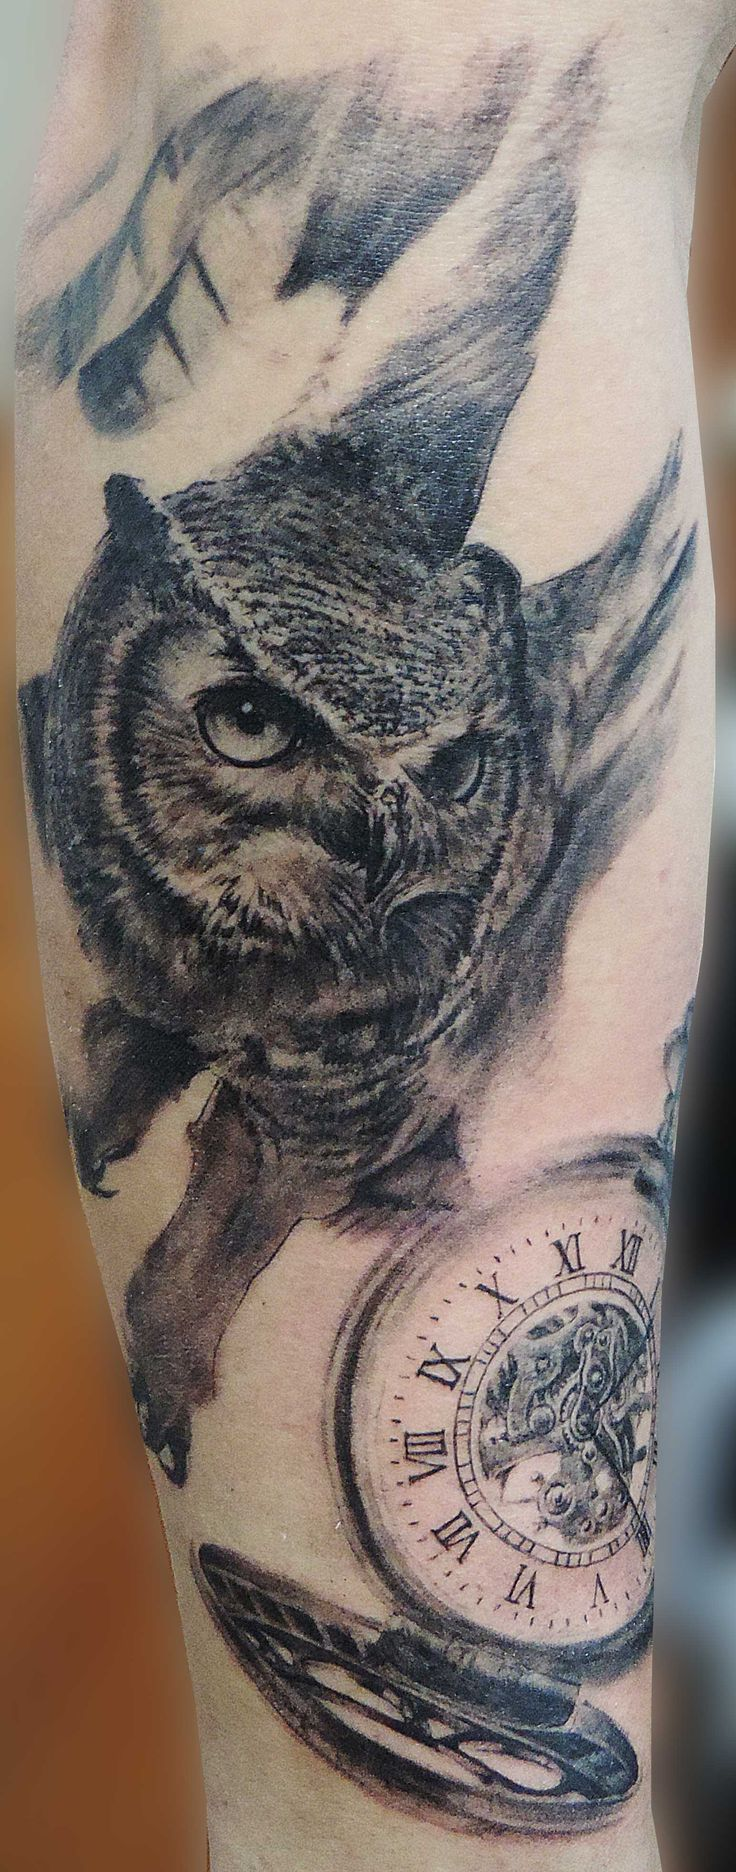 Owl and pocket watch tattoo full sleeve in progress for Tattoo supply los angeles